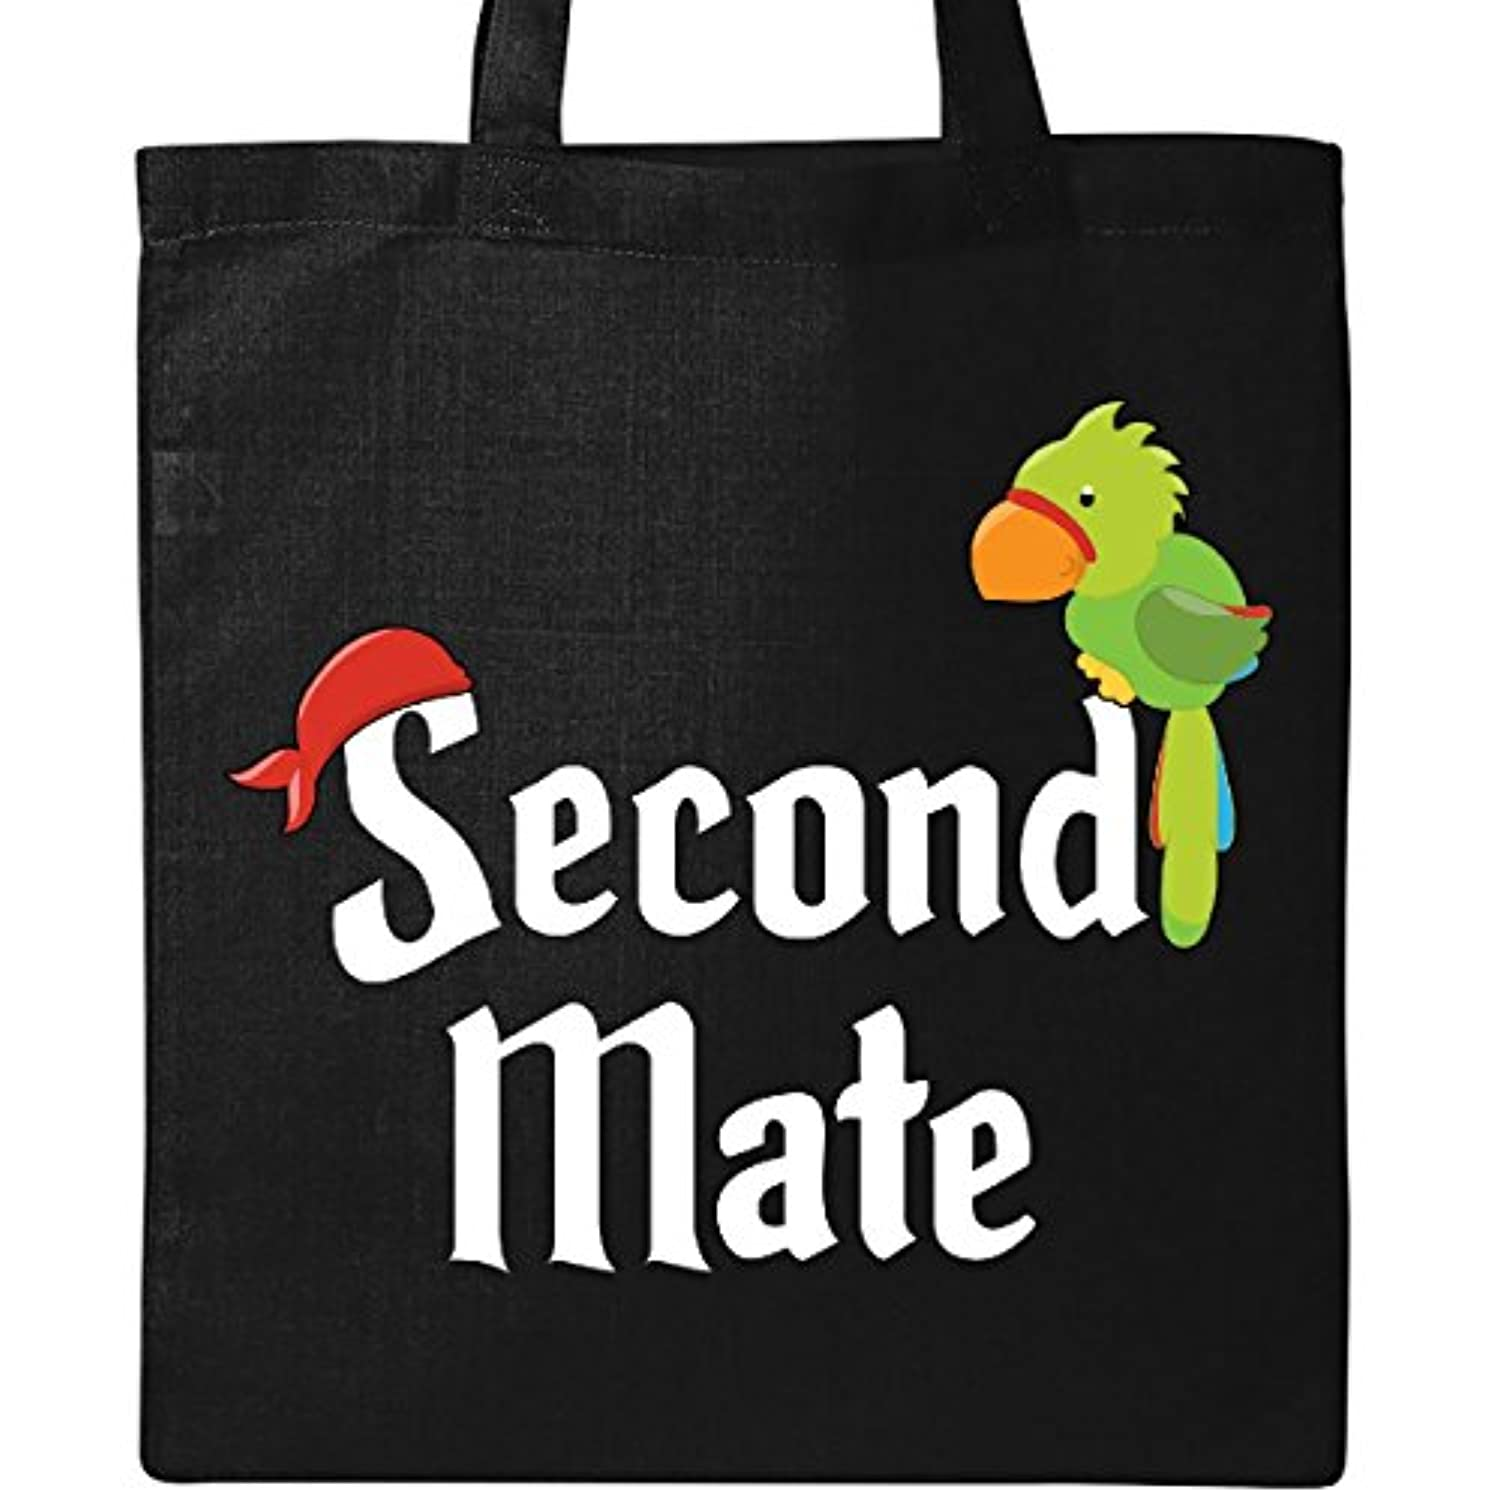 Inktastic – Second Mate Pirate with parrot andバンダナトートバッグ One Size ブラック